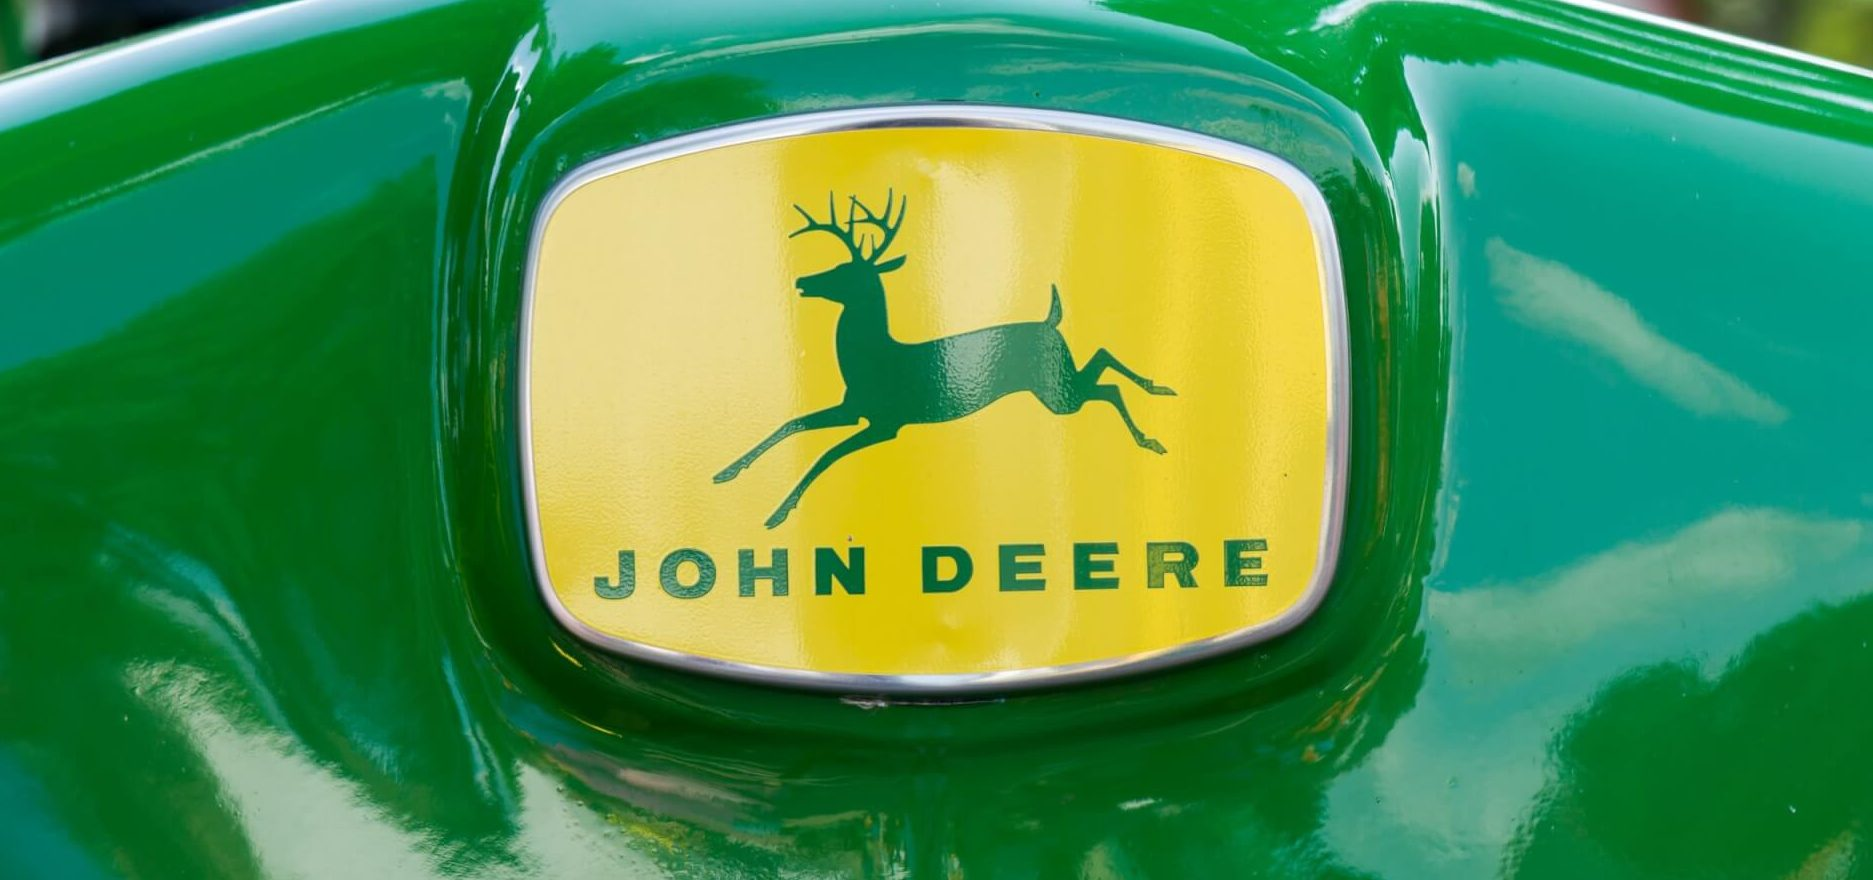 John Deere partners with AMS to develop next generation products Case Study